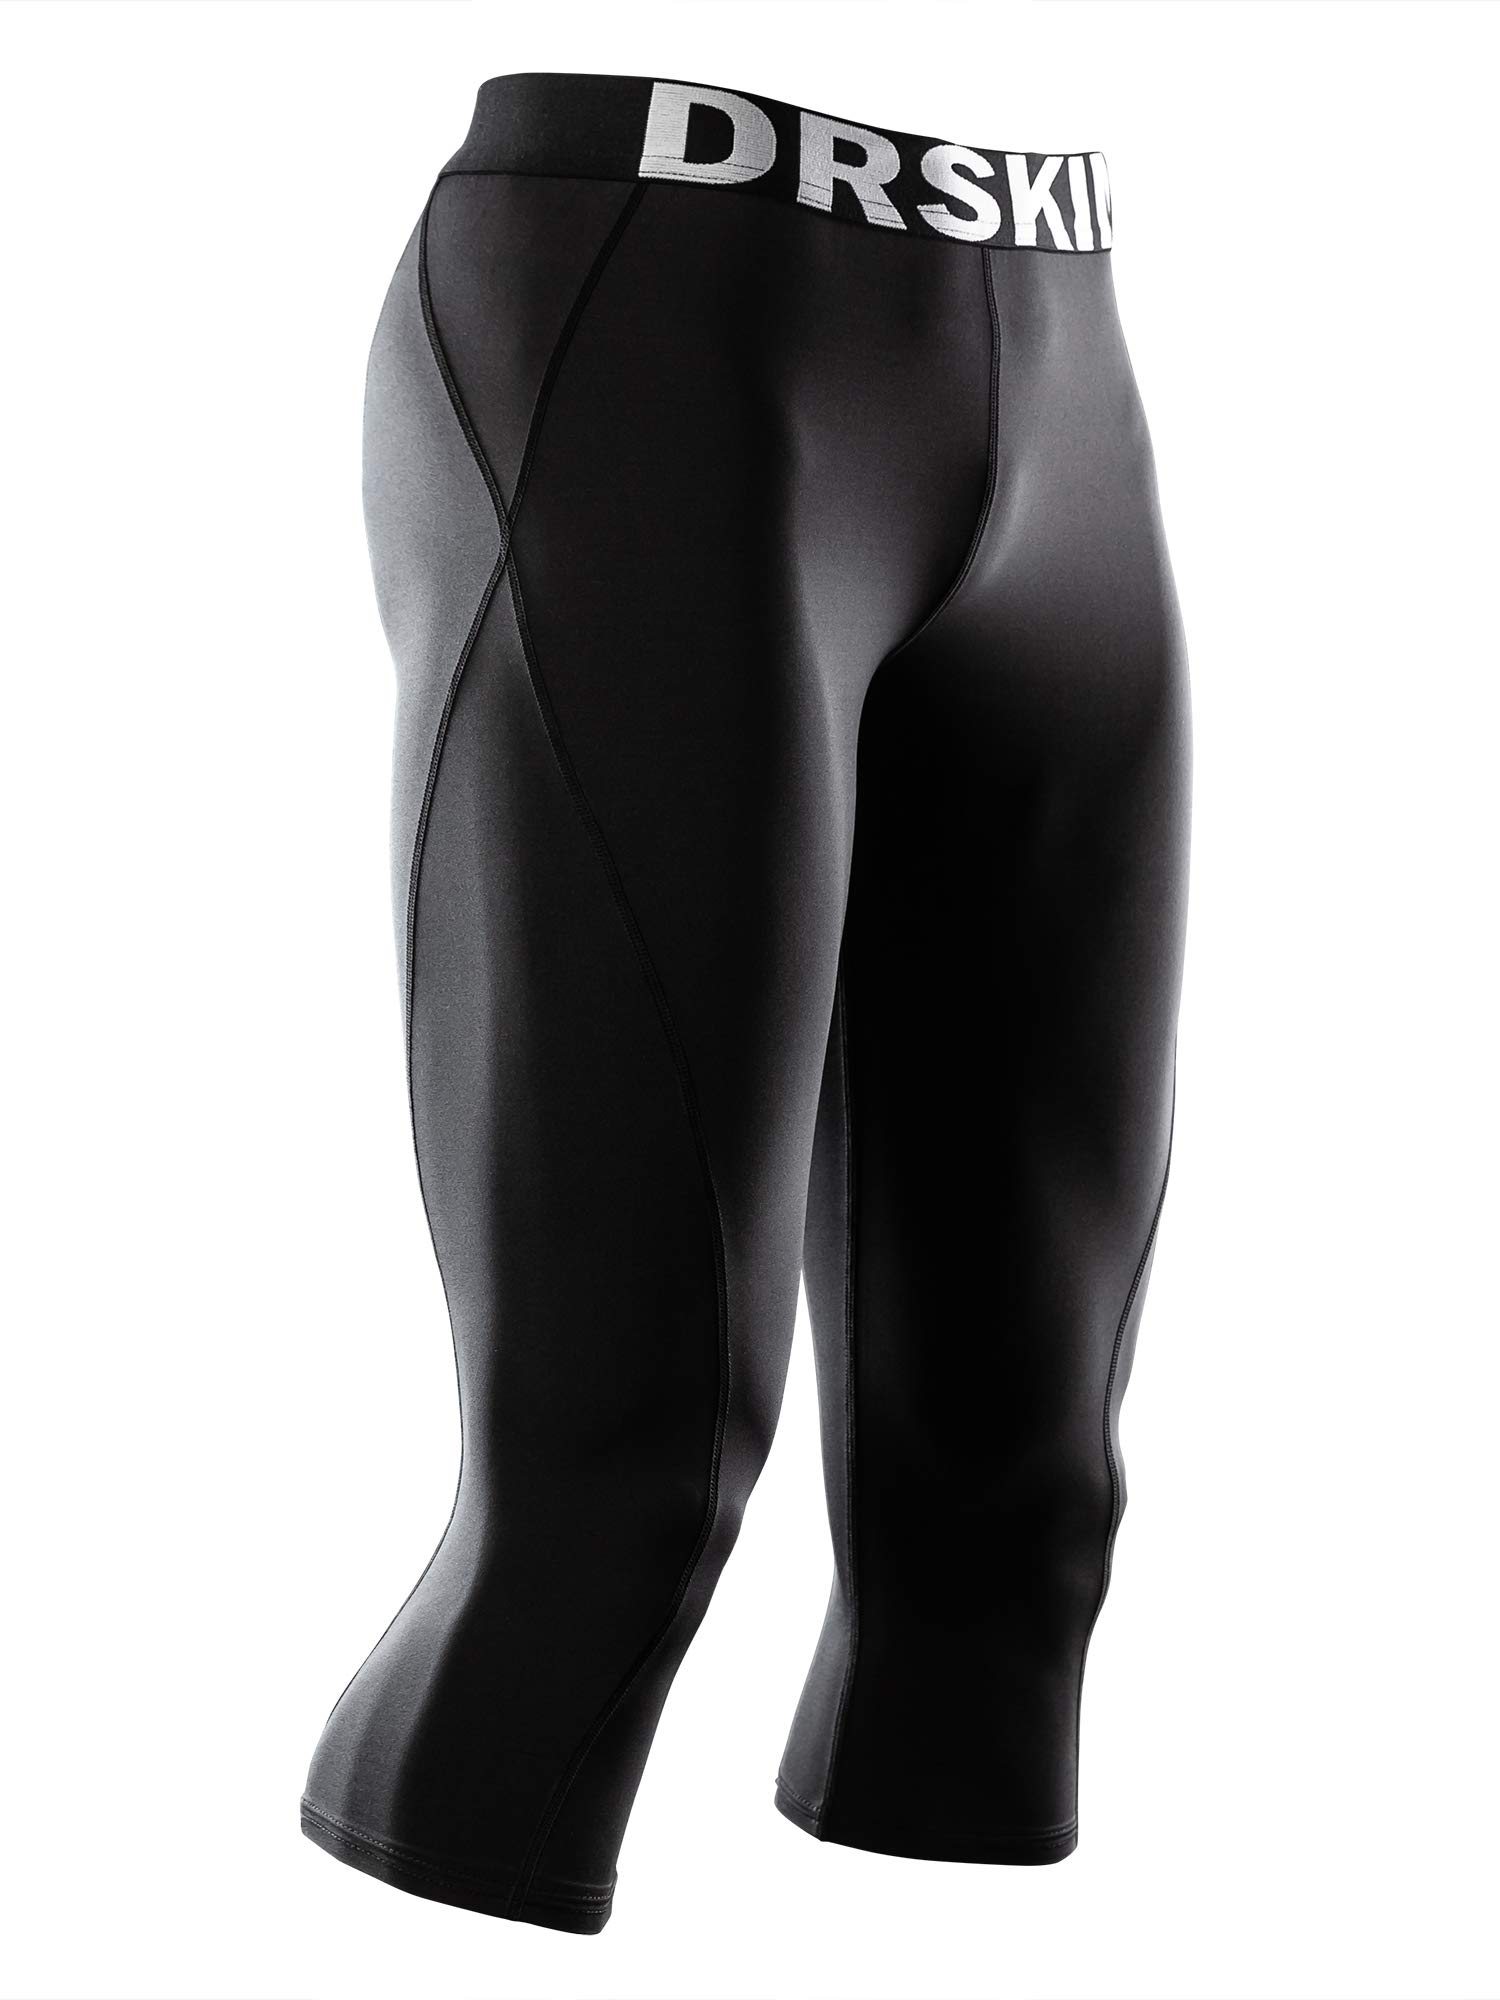 DRSKIN] Tight 3/4 Compression Pants Base Layer Running Pants Men (S, BB807)